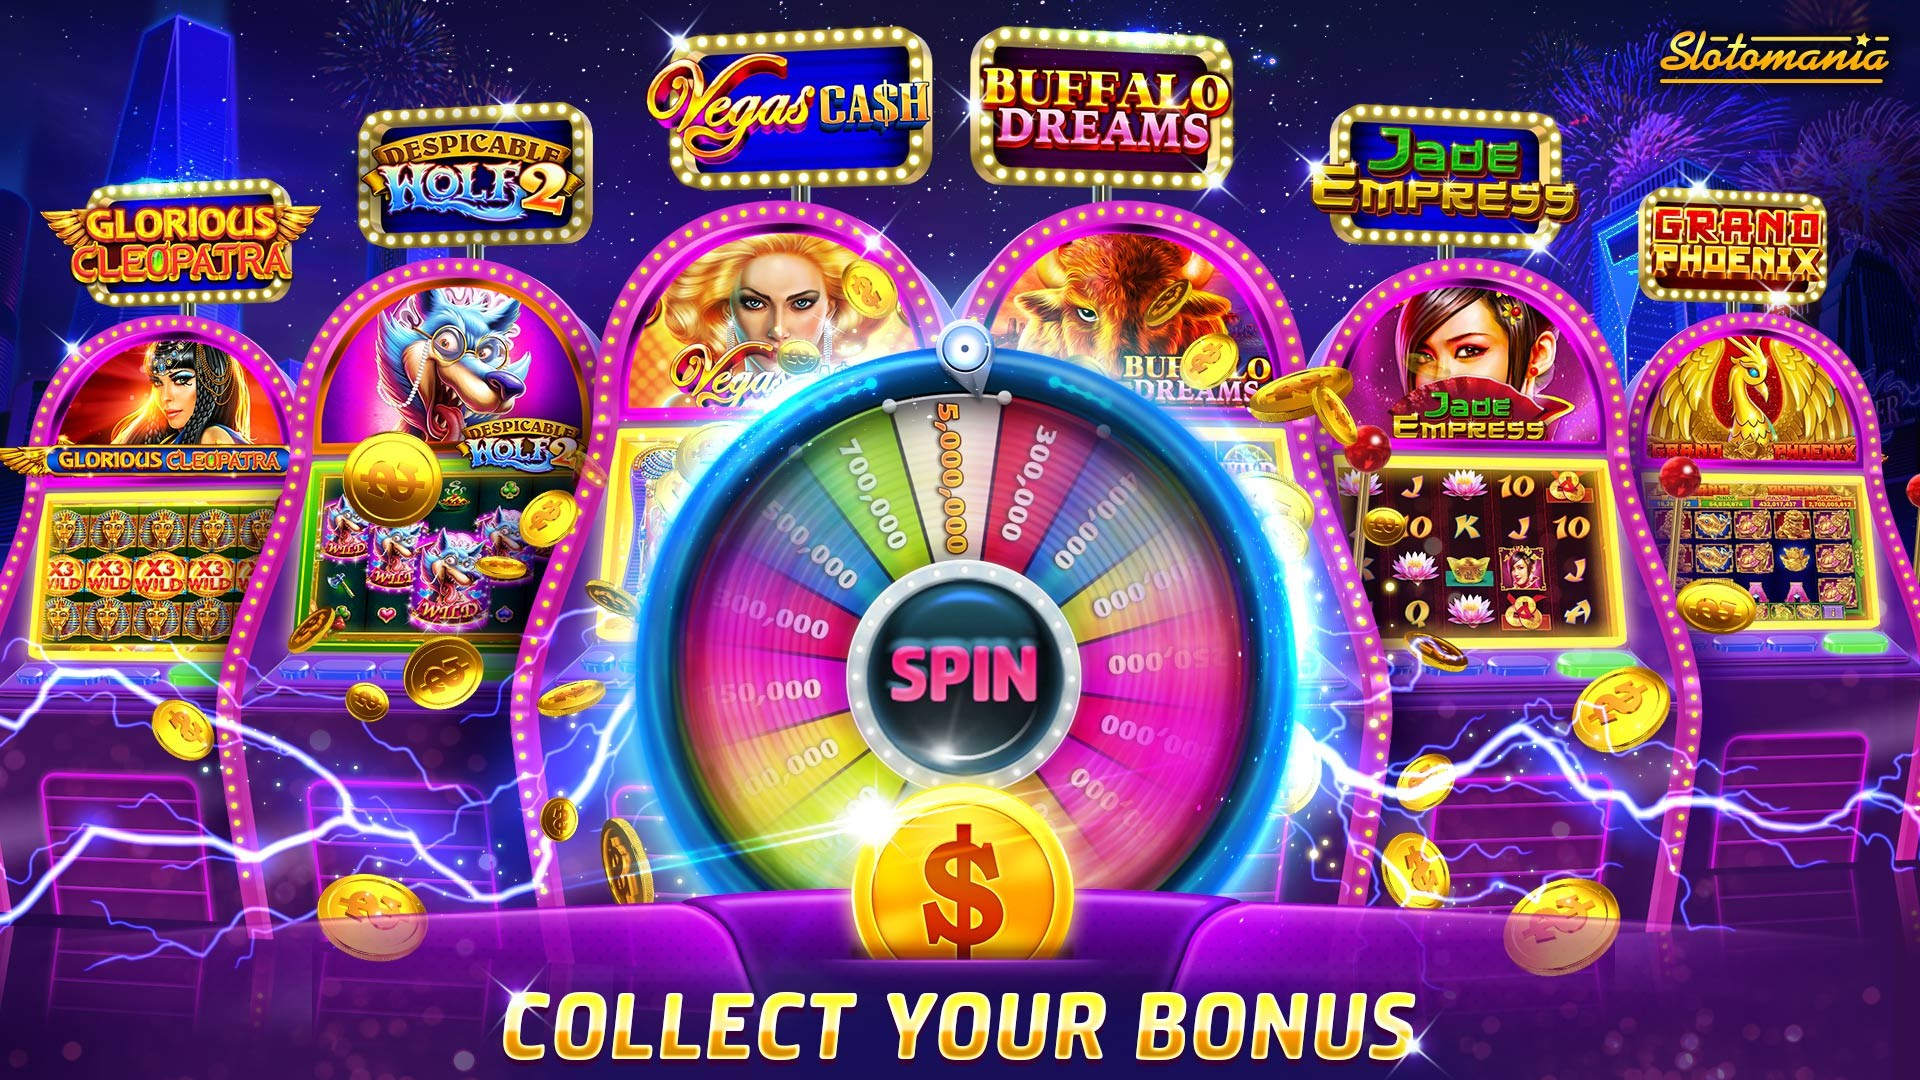 Points of interest And even Appears to be From Slot click here Models Grow Tempt Connected with Gaming, Study Shows